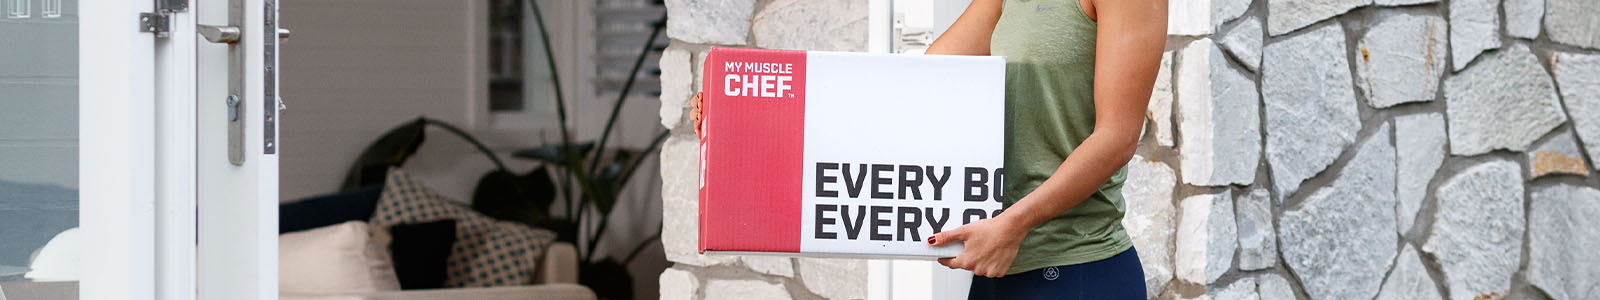 My Muscle Chef's banner